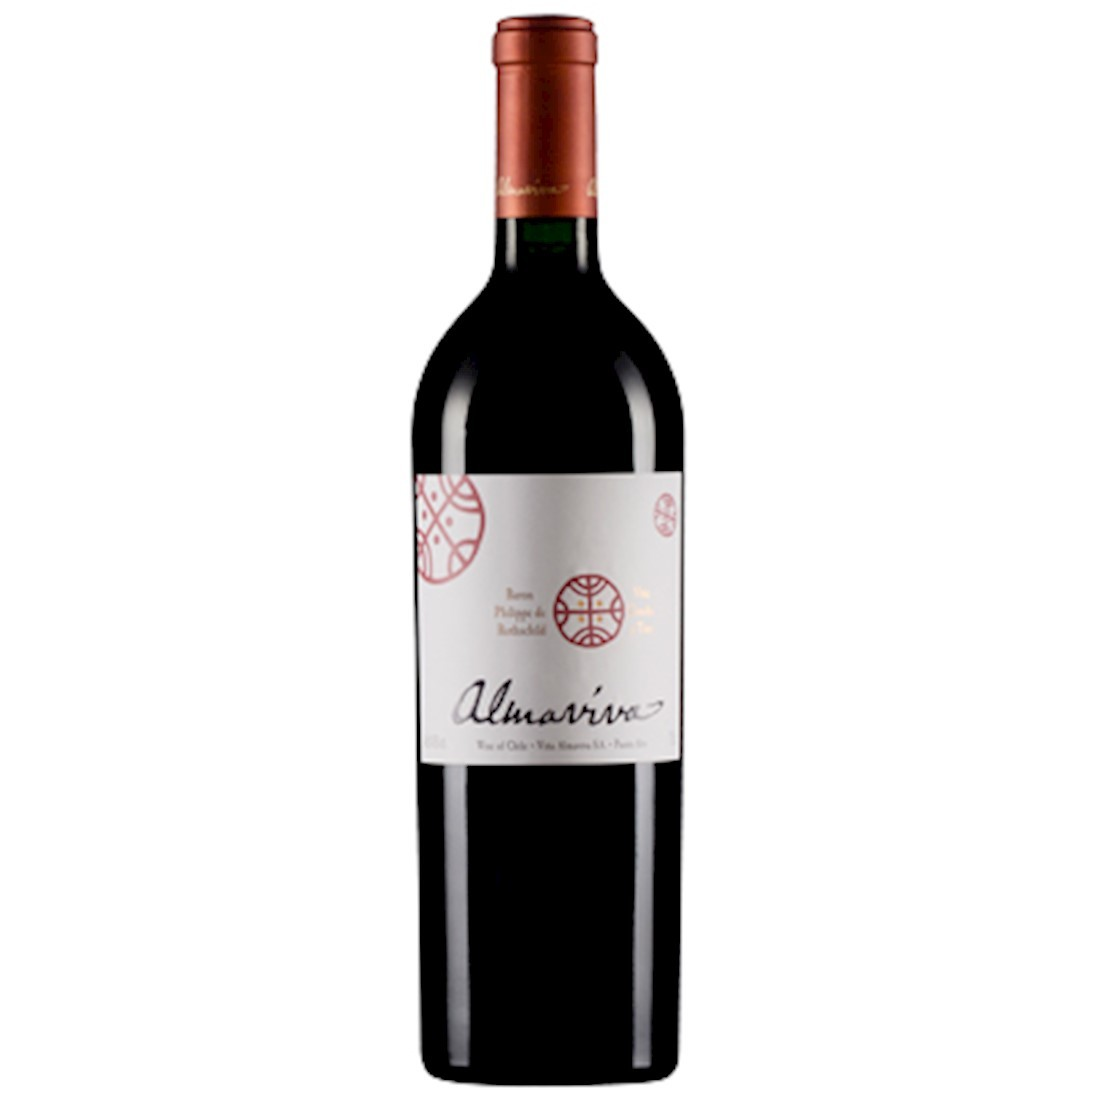 Vinho Chileno Almaviva 2012(750ml) RP-93,WS-92,JS-96 e WE-92